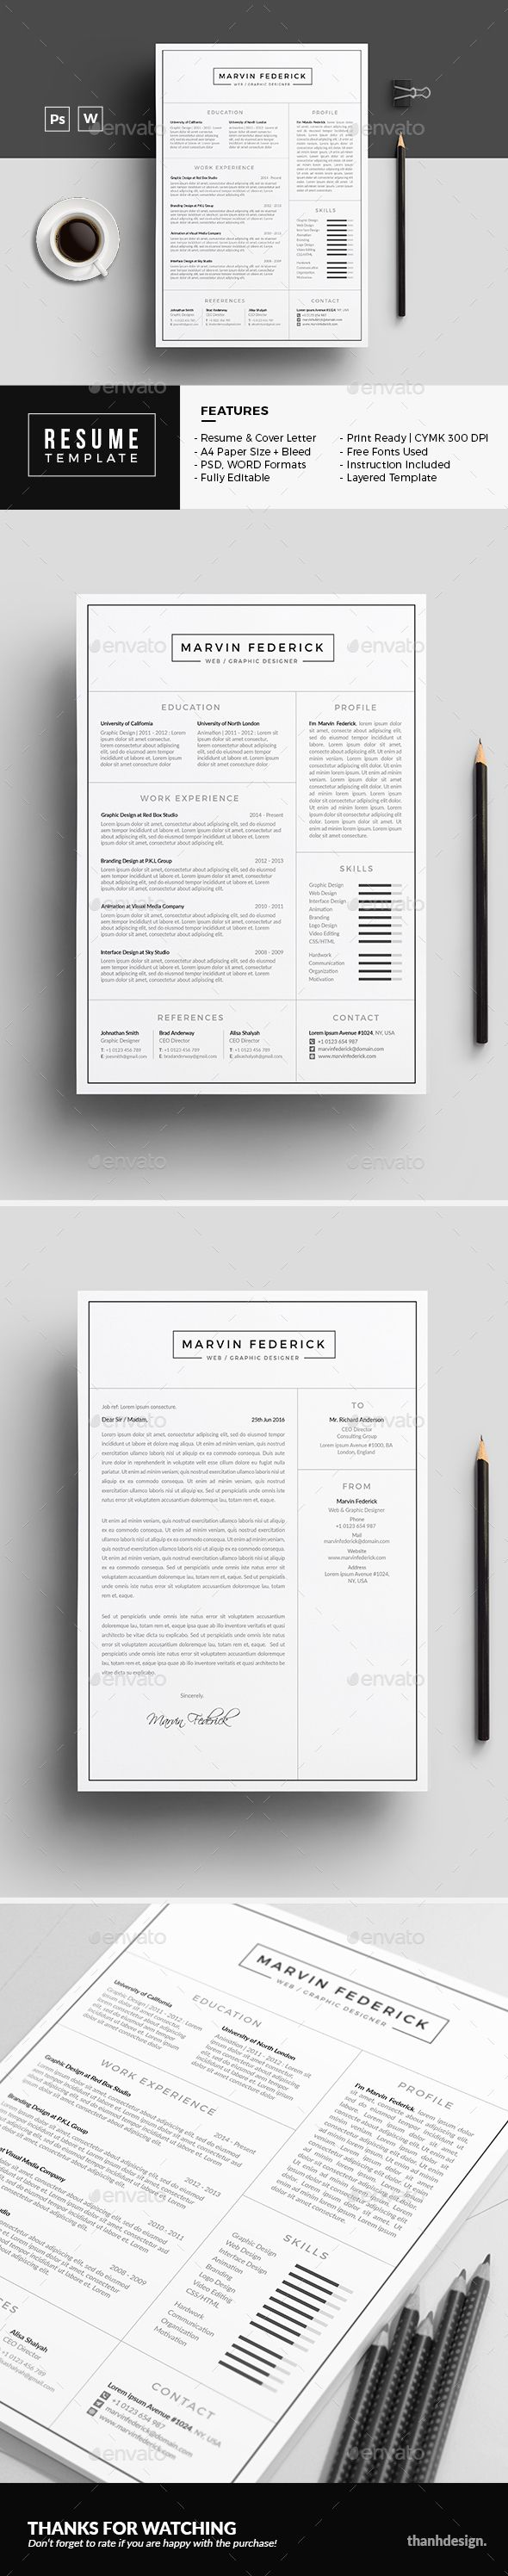 Resume  Psd Template Resume Minimalist Resume Clean  Download